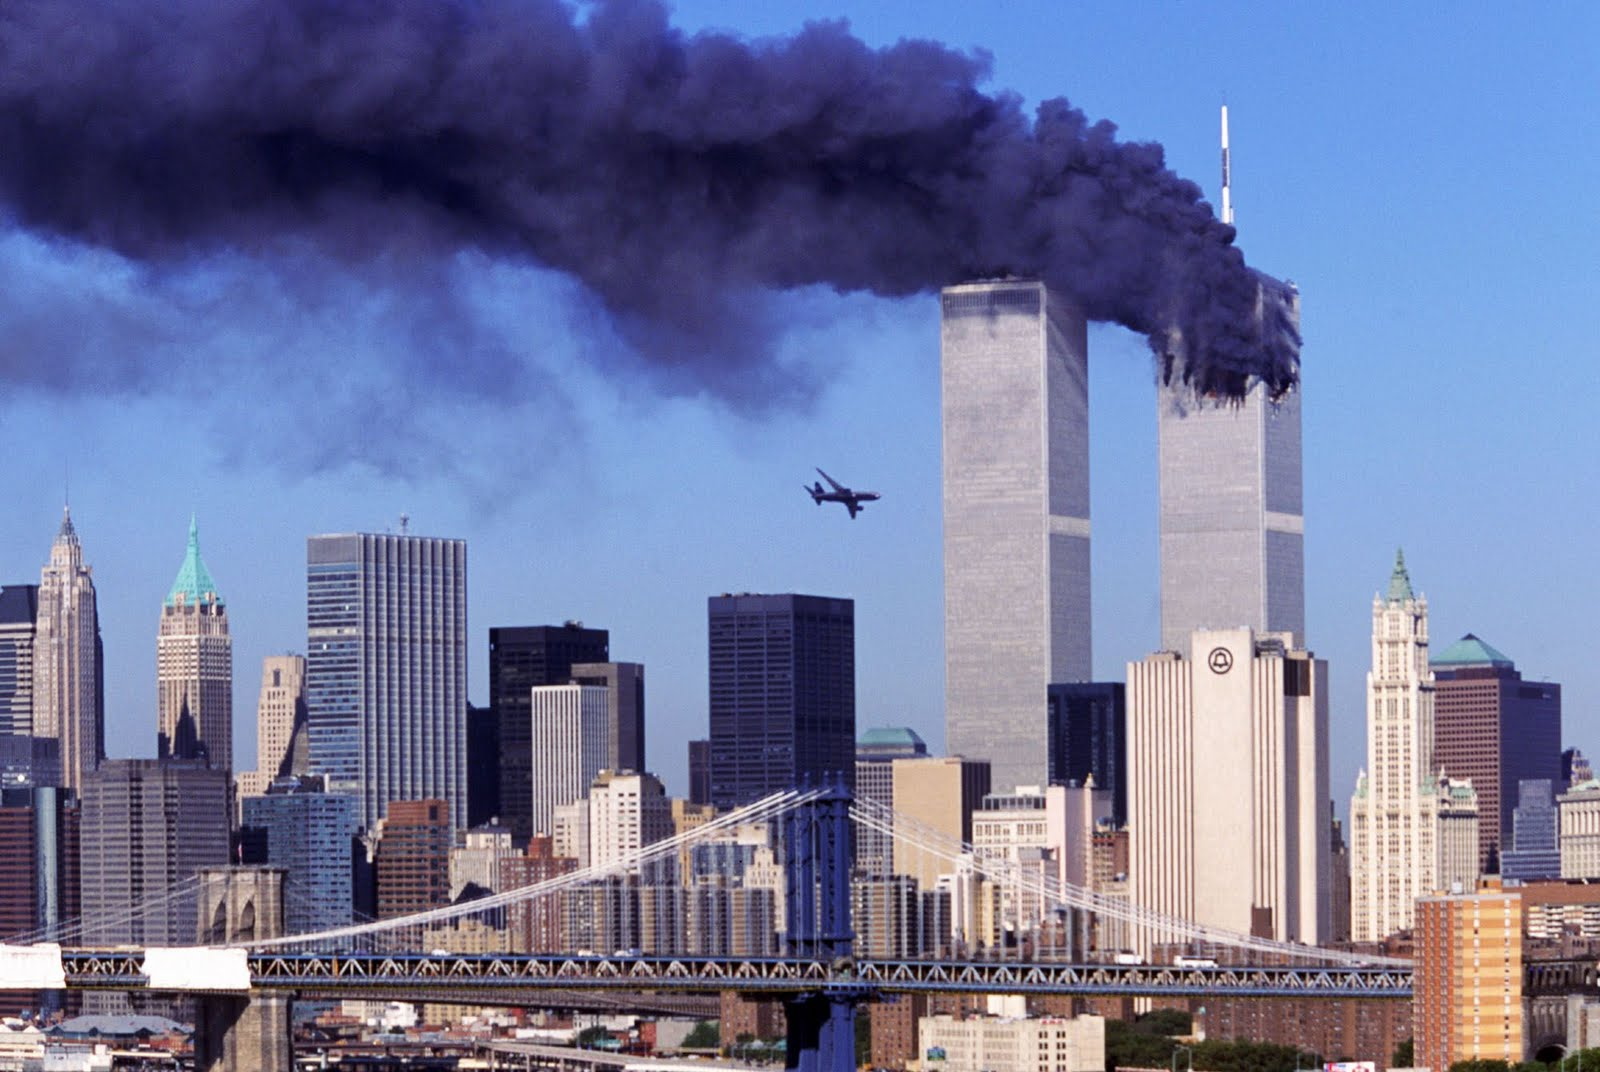 Historical Wallpapers: 9/11 (2001)